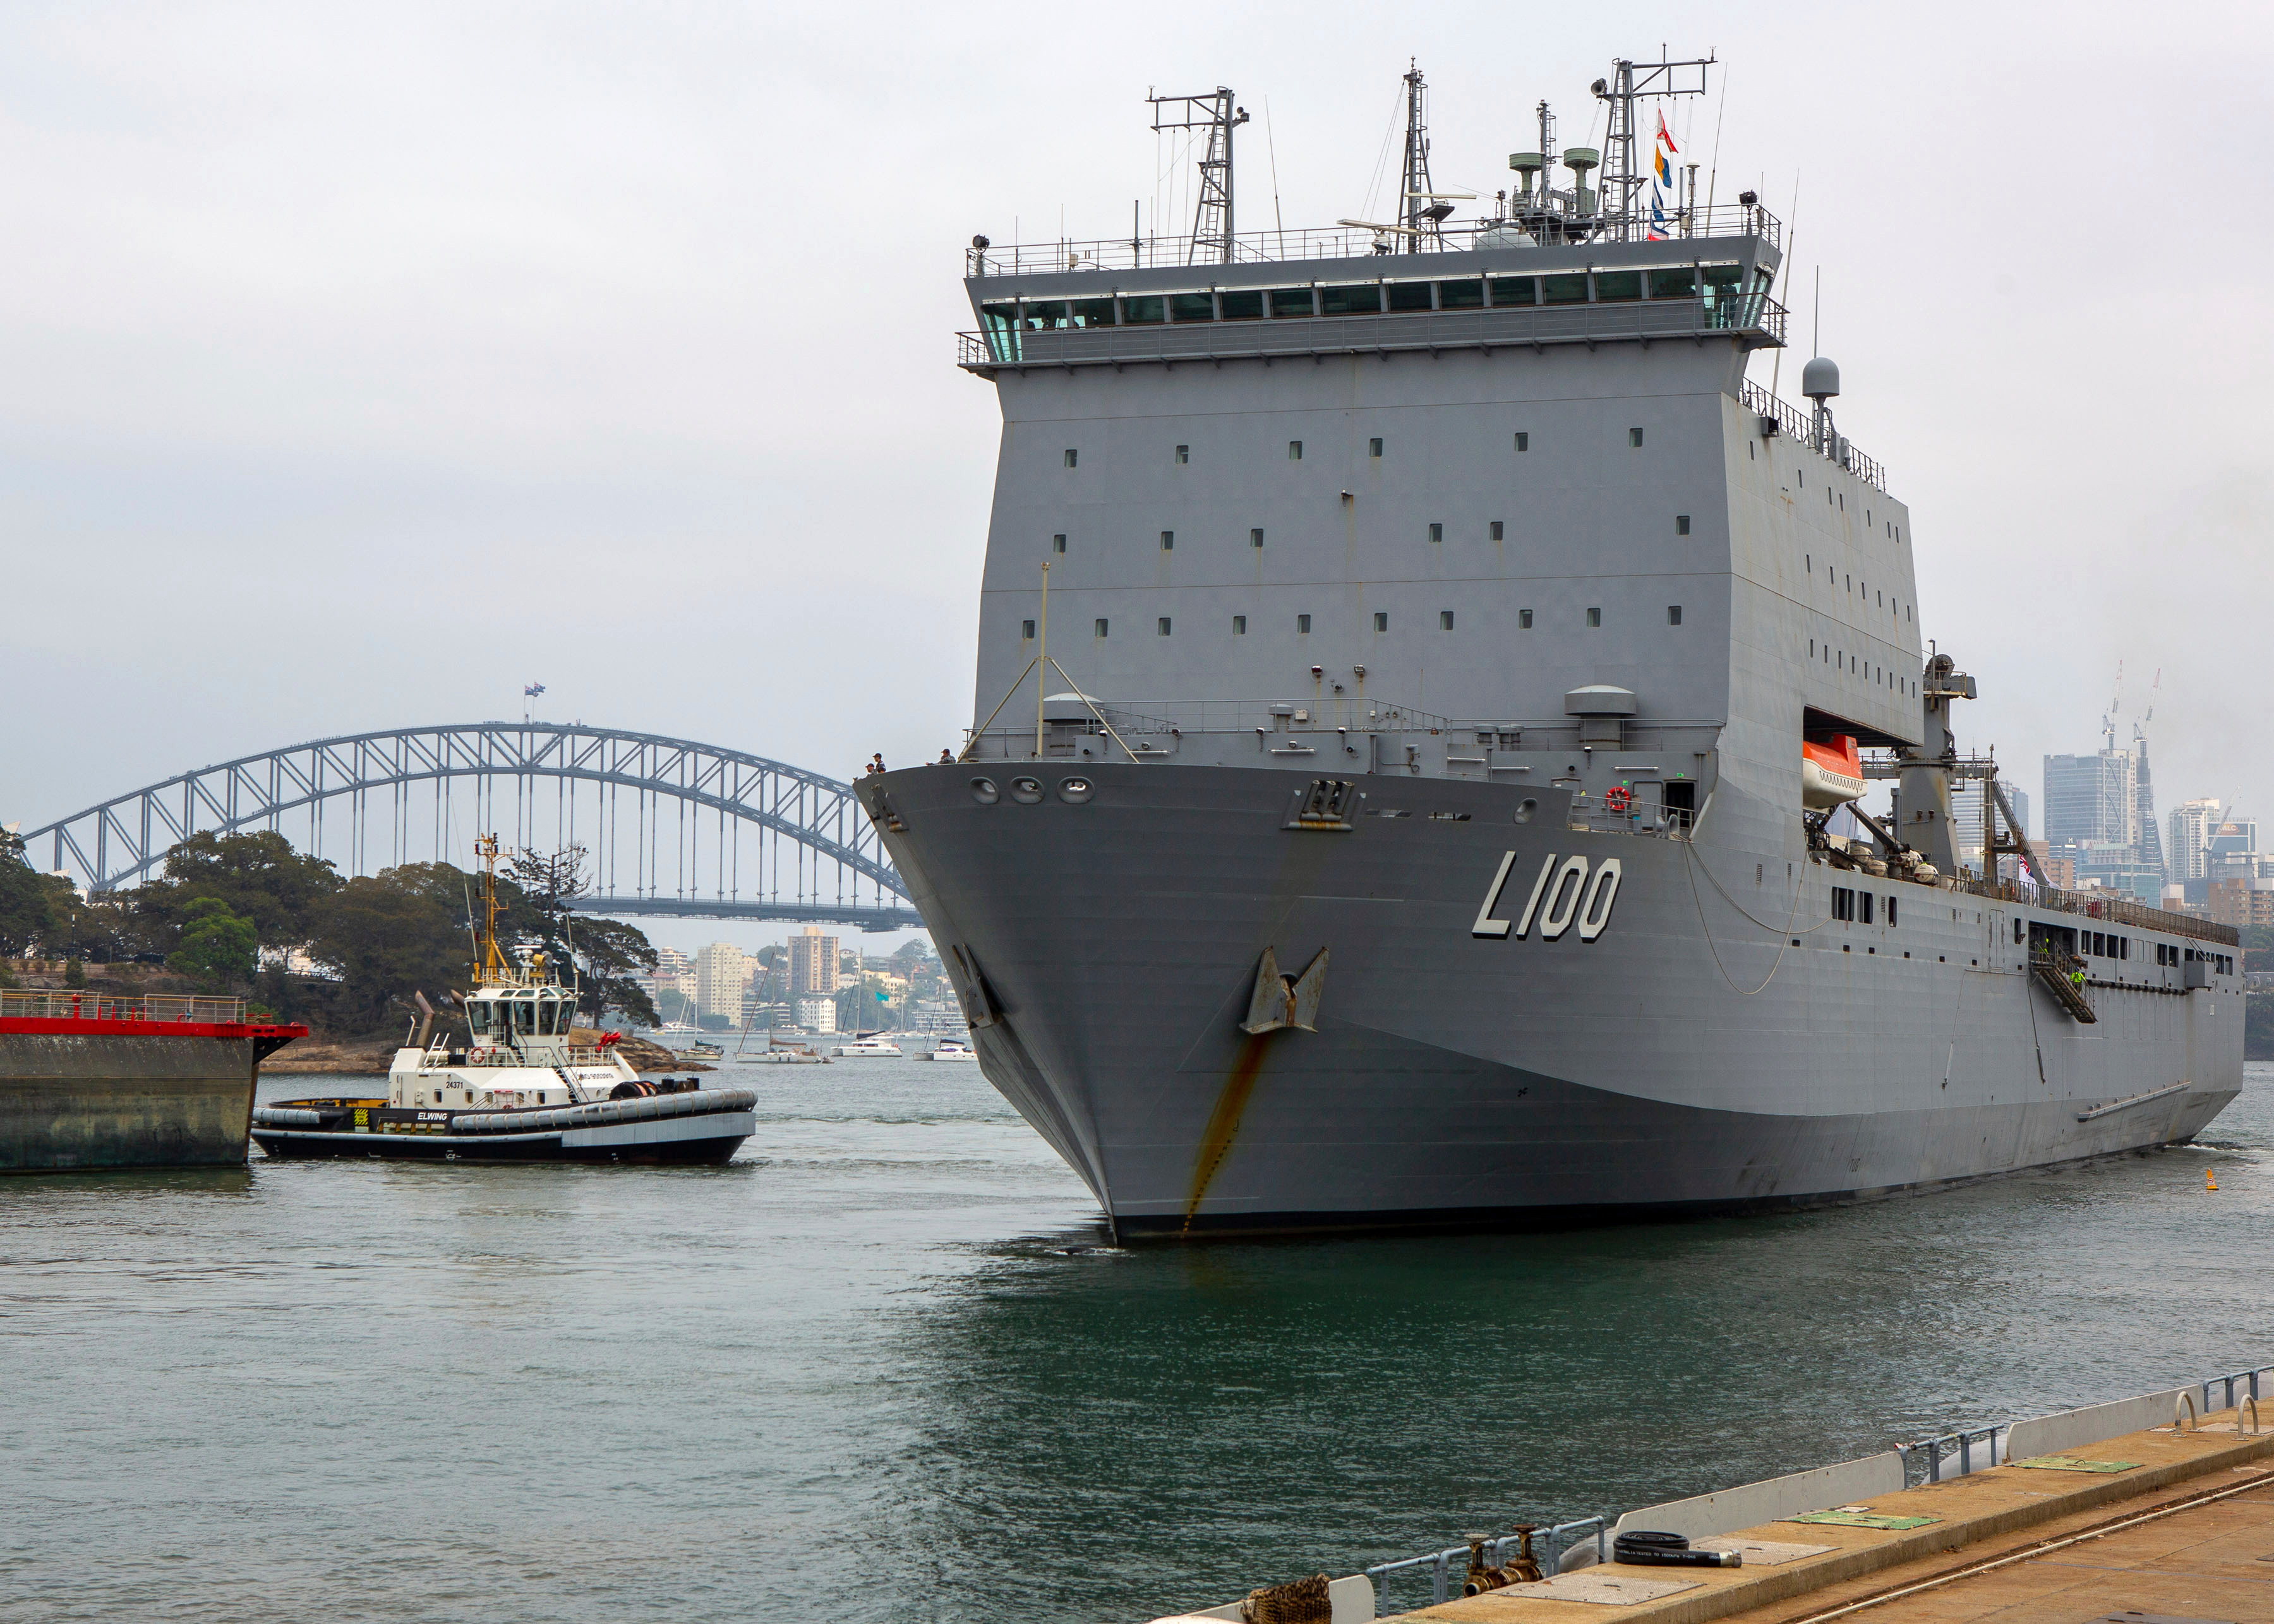 The HMAS Choules, pictured leaving Sydney, is being sent to help the evacuation